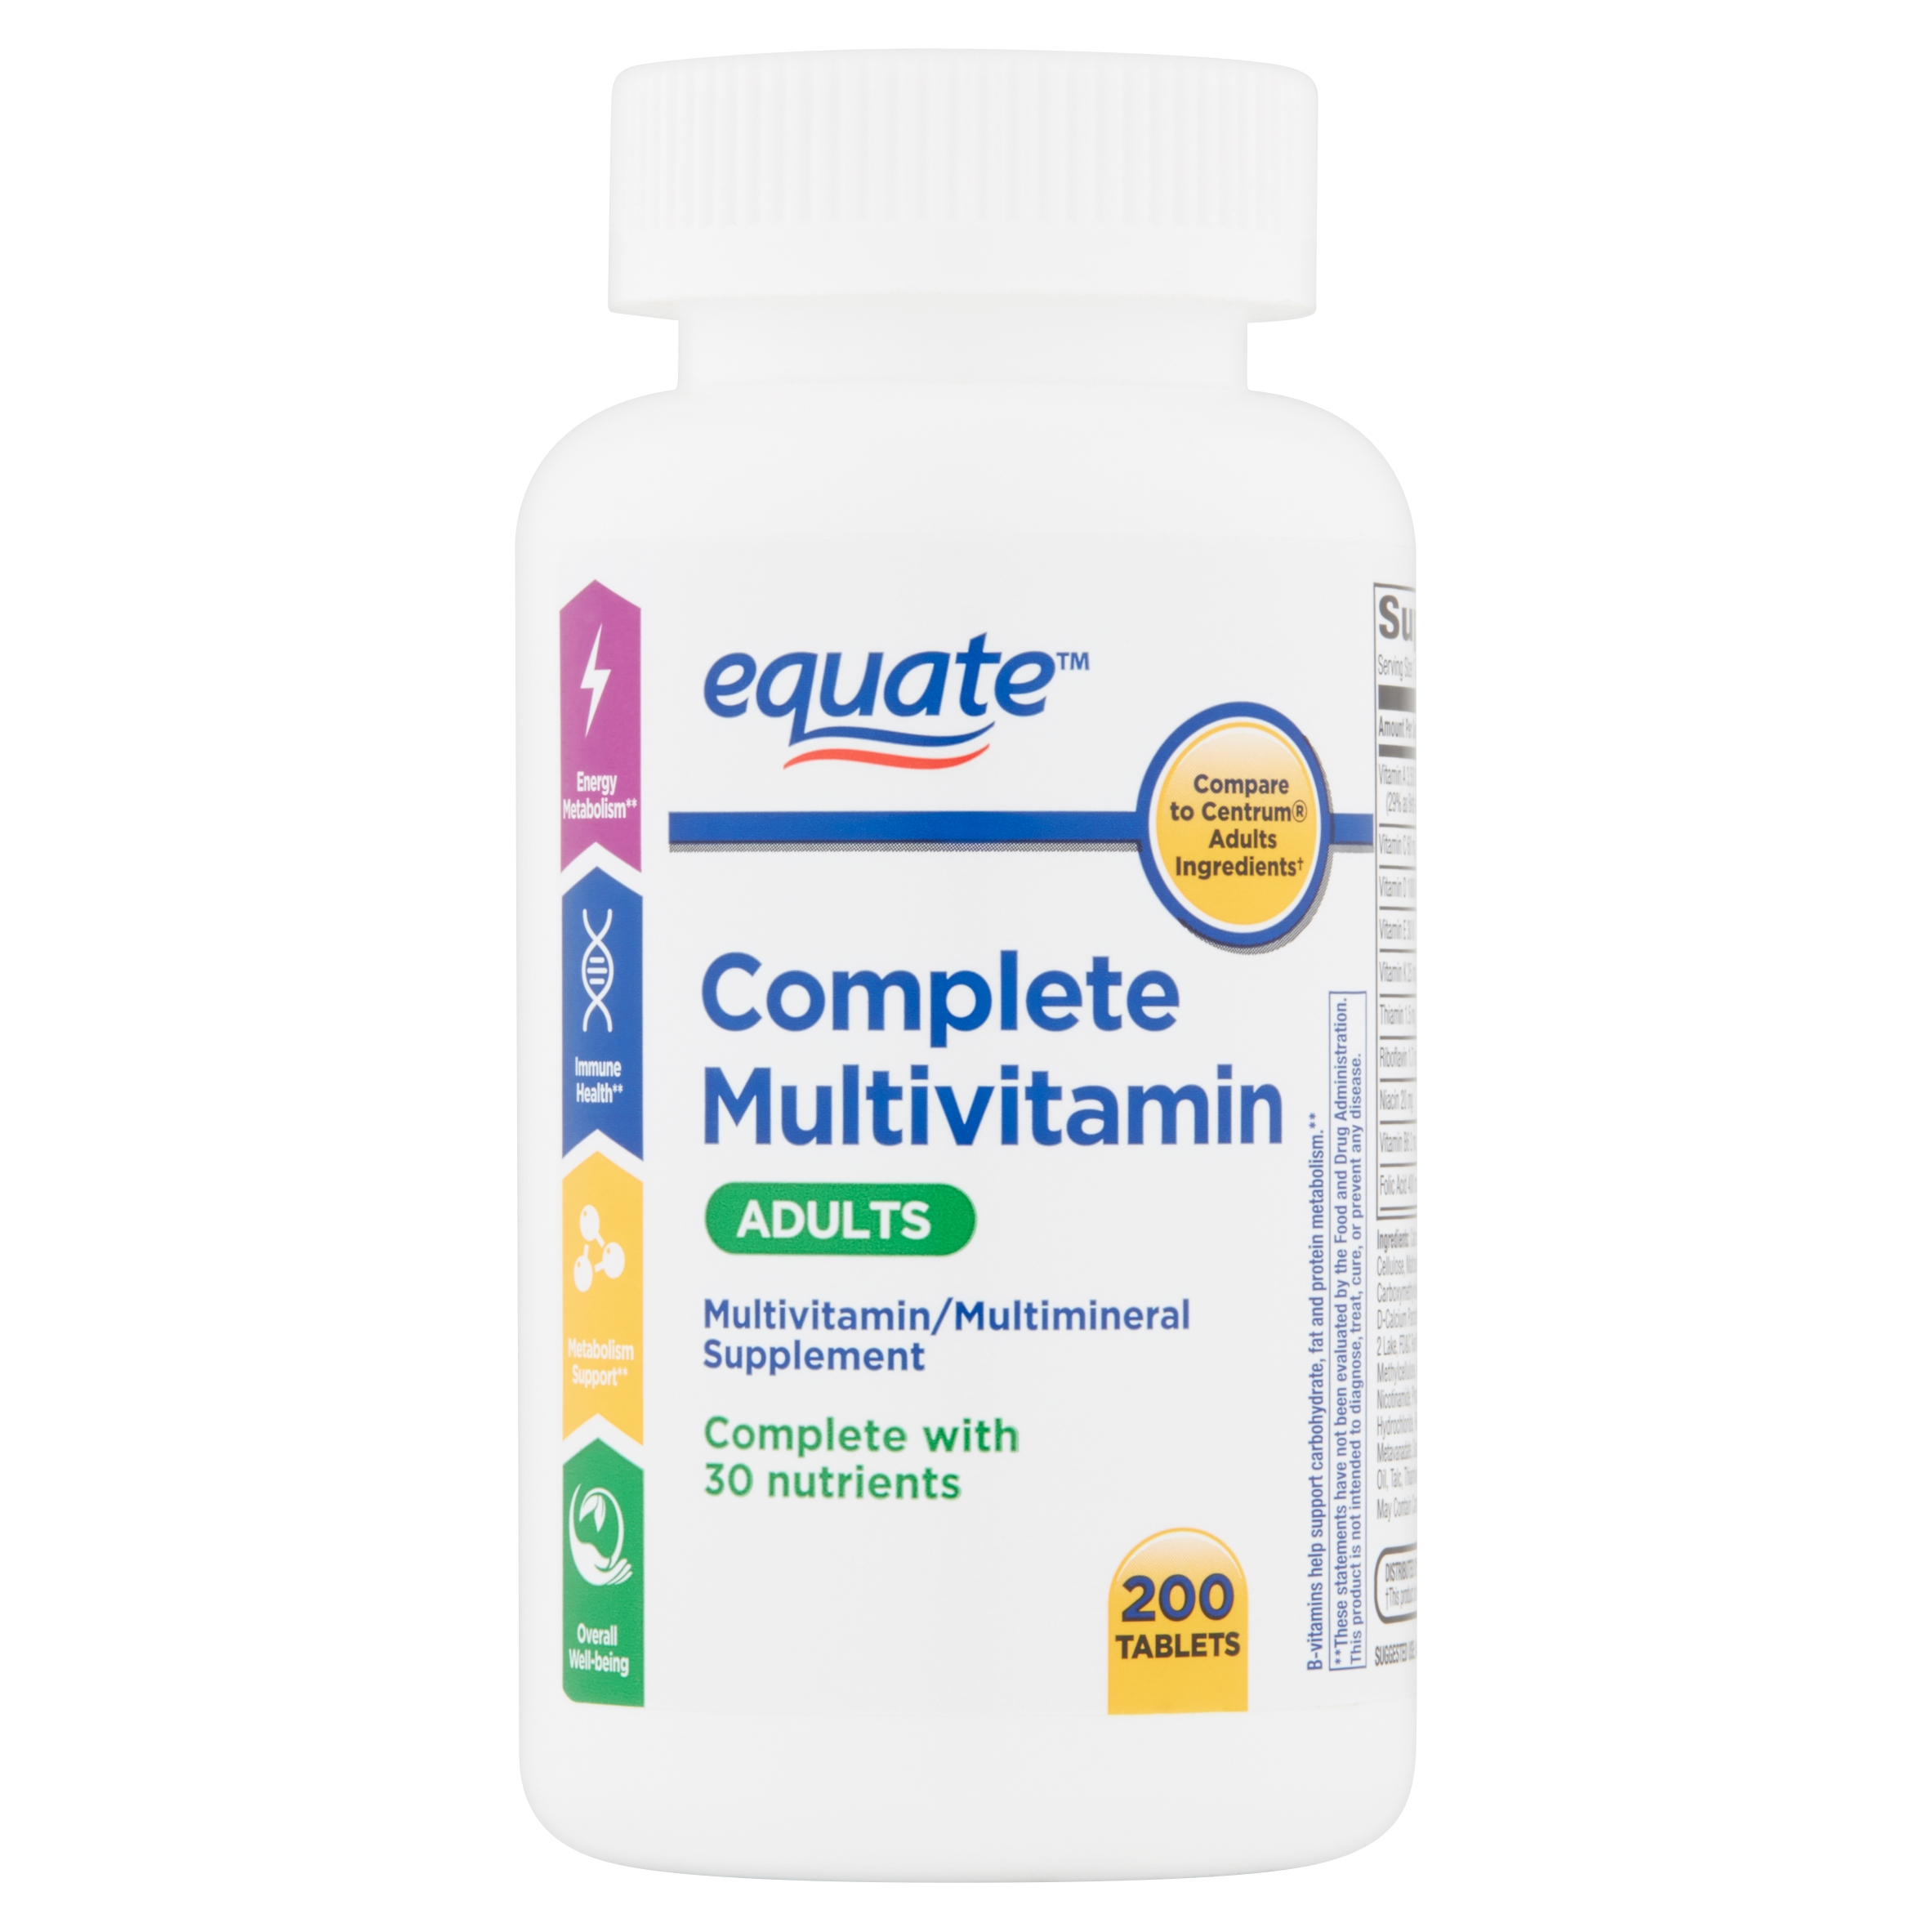 Equate Adult Complete Multivitamin Tablets, 200 count - Walmart com